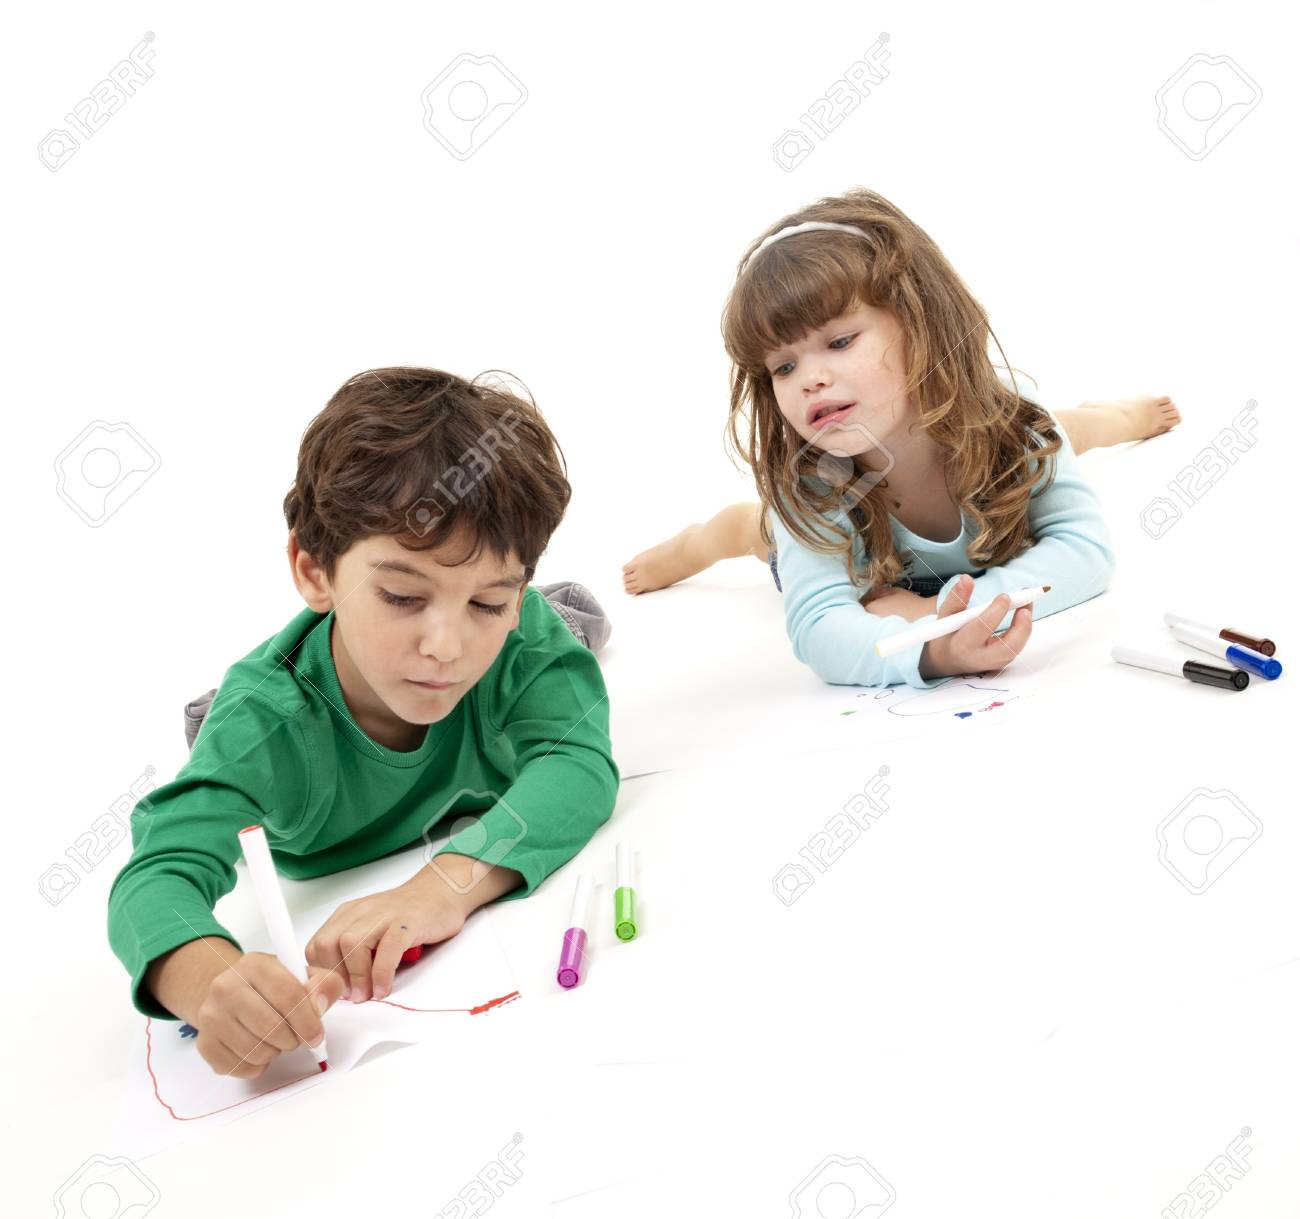 boy and girl painting isolated on white Stock Photo - 7955556